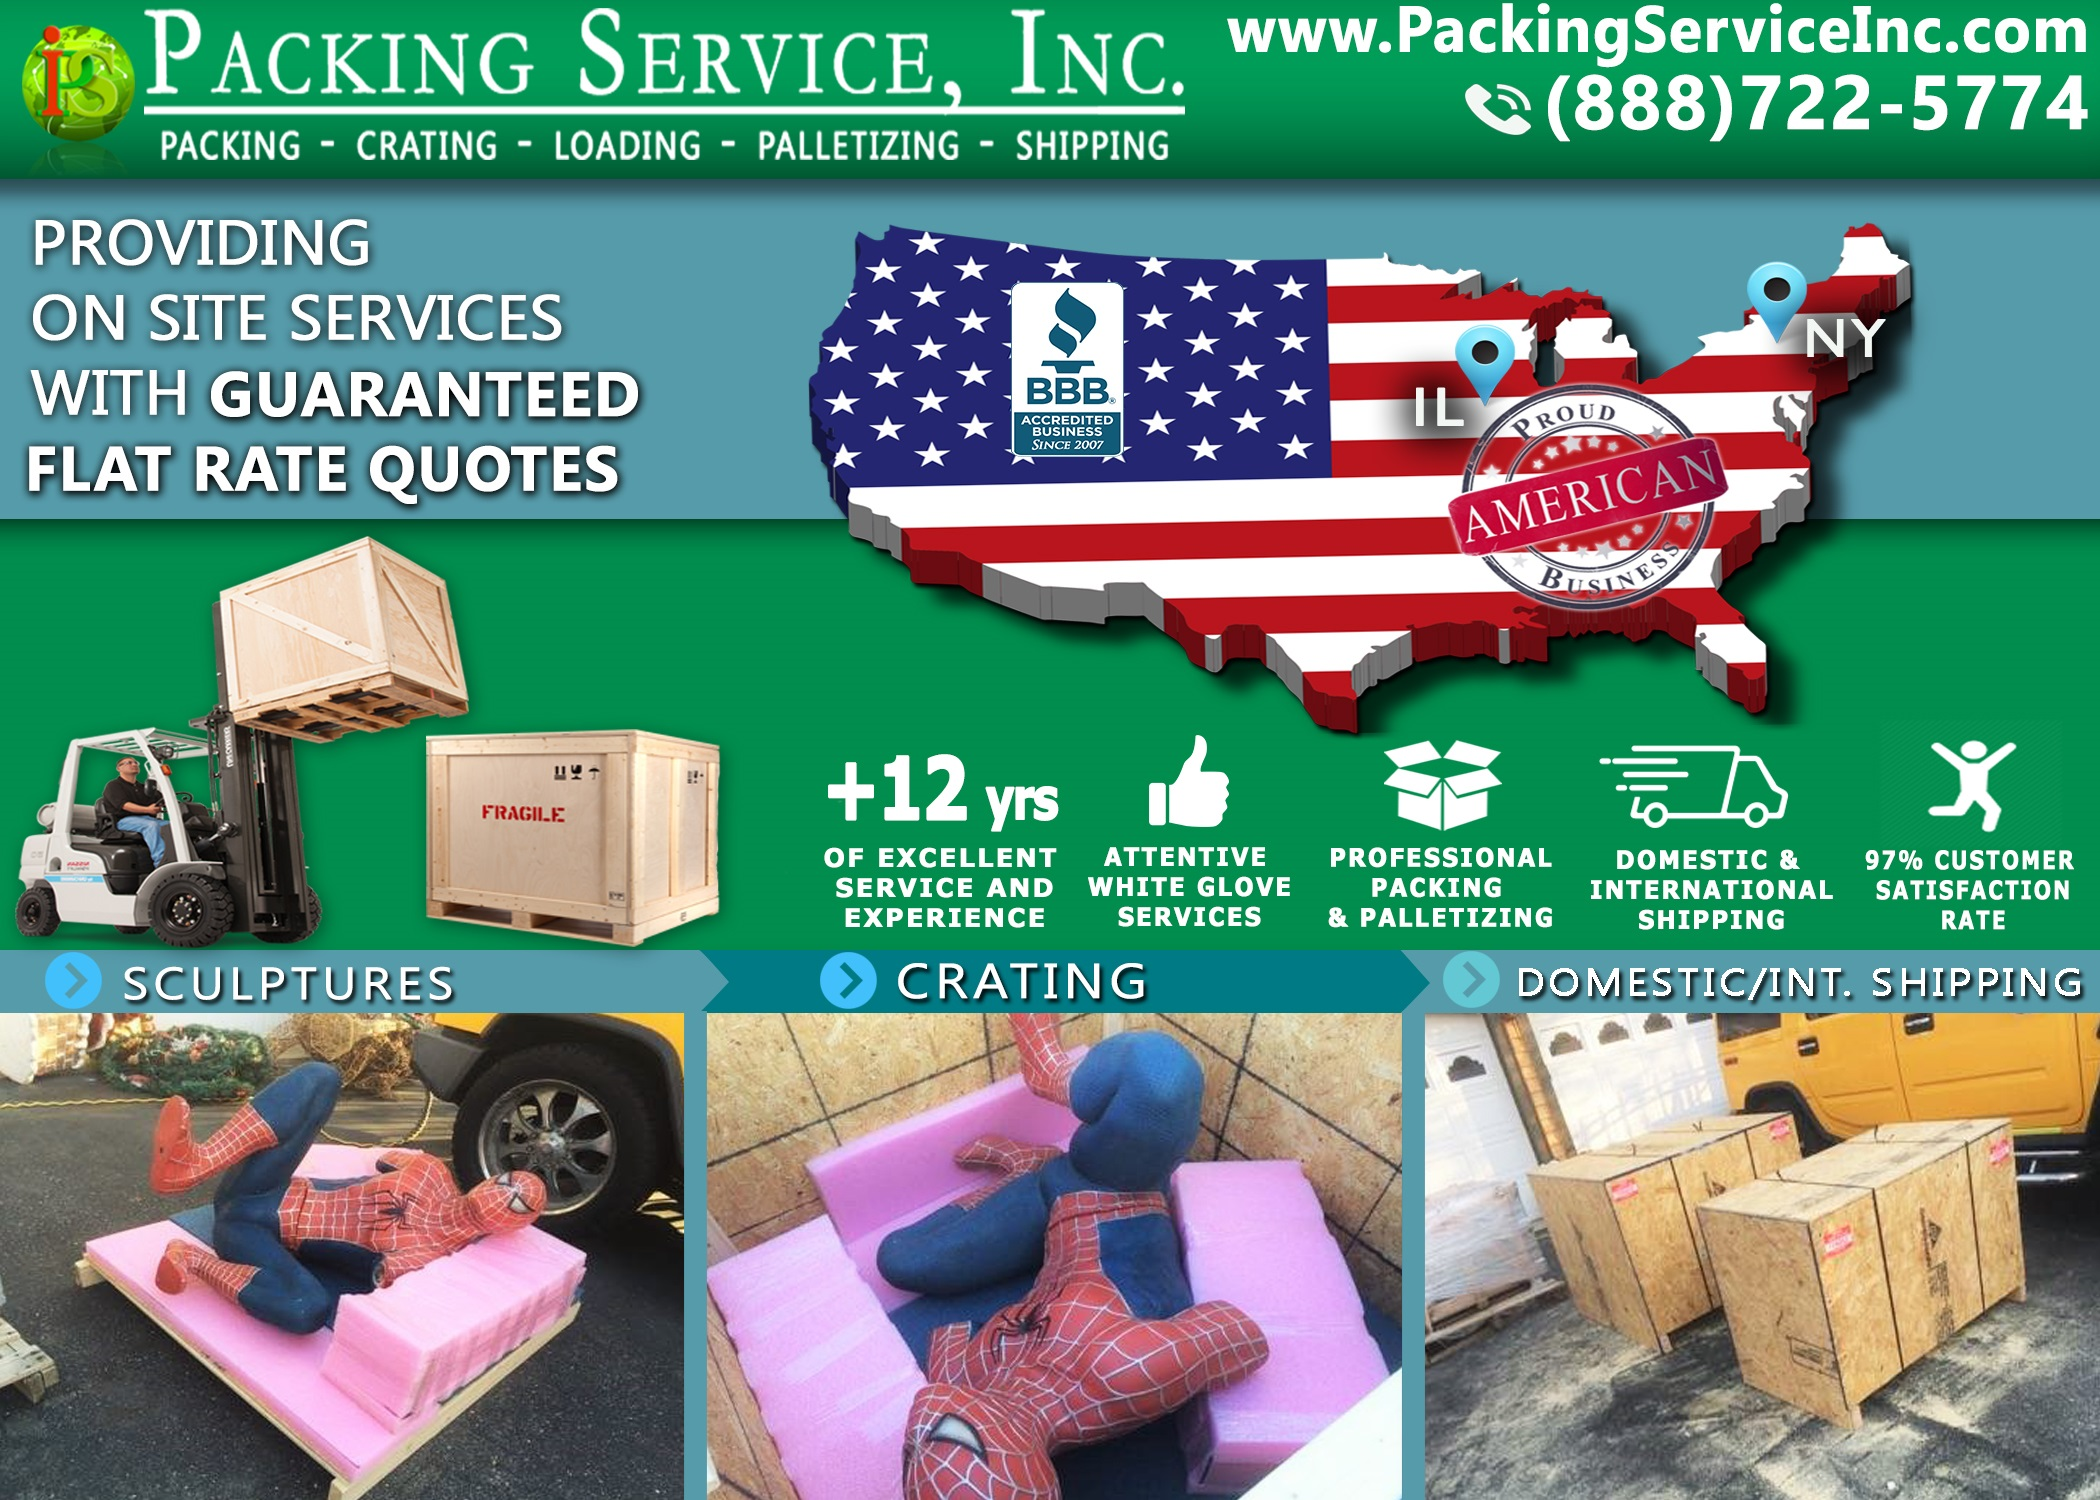 crating-spiderman-statue-and-shipping-from-new-york-to-illinois-with-packing-service-inc-424